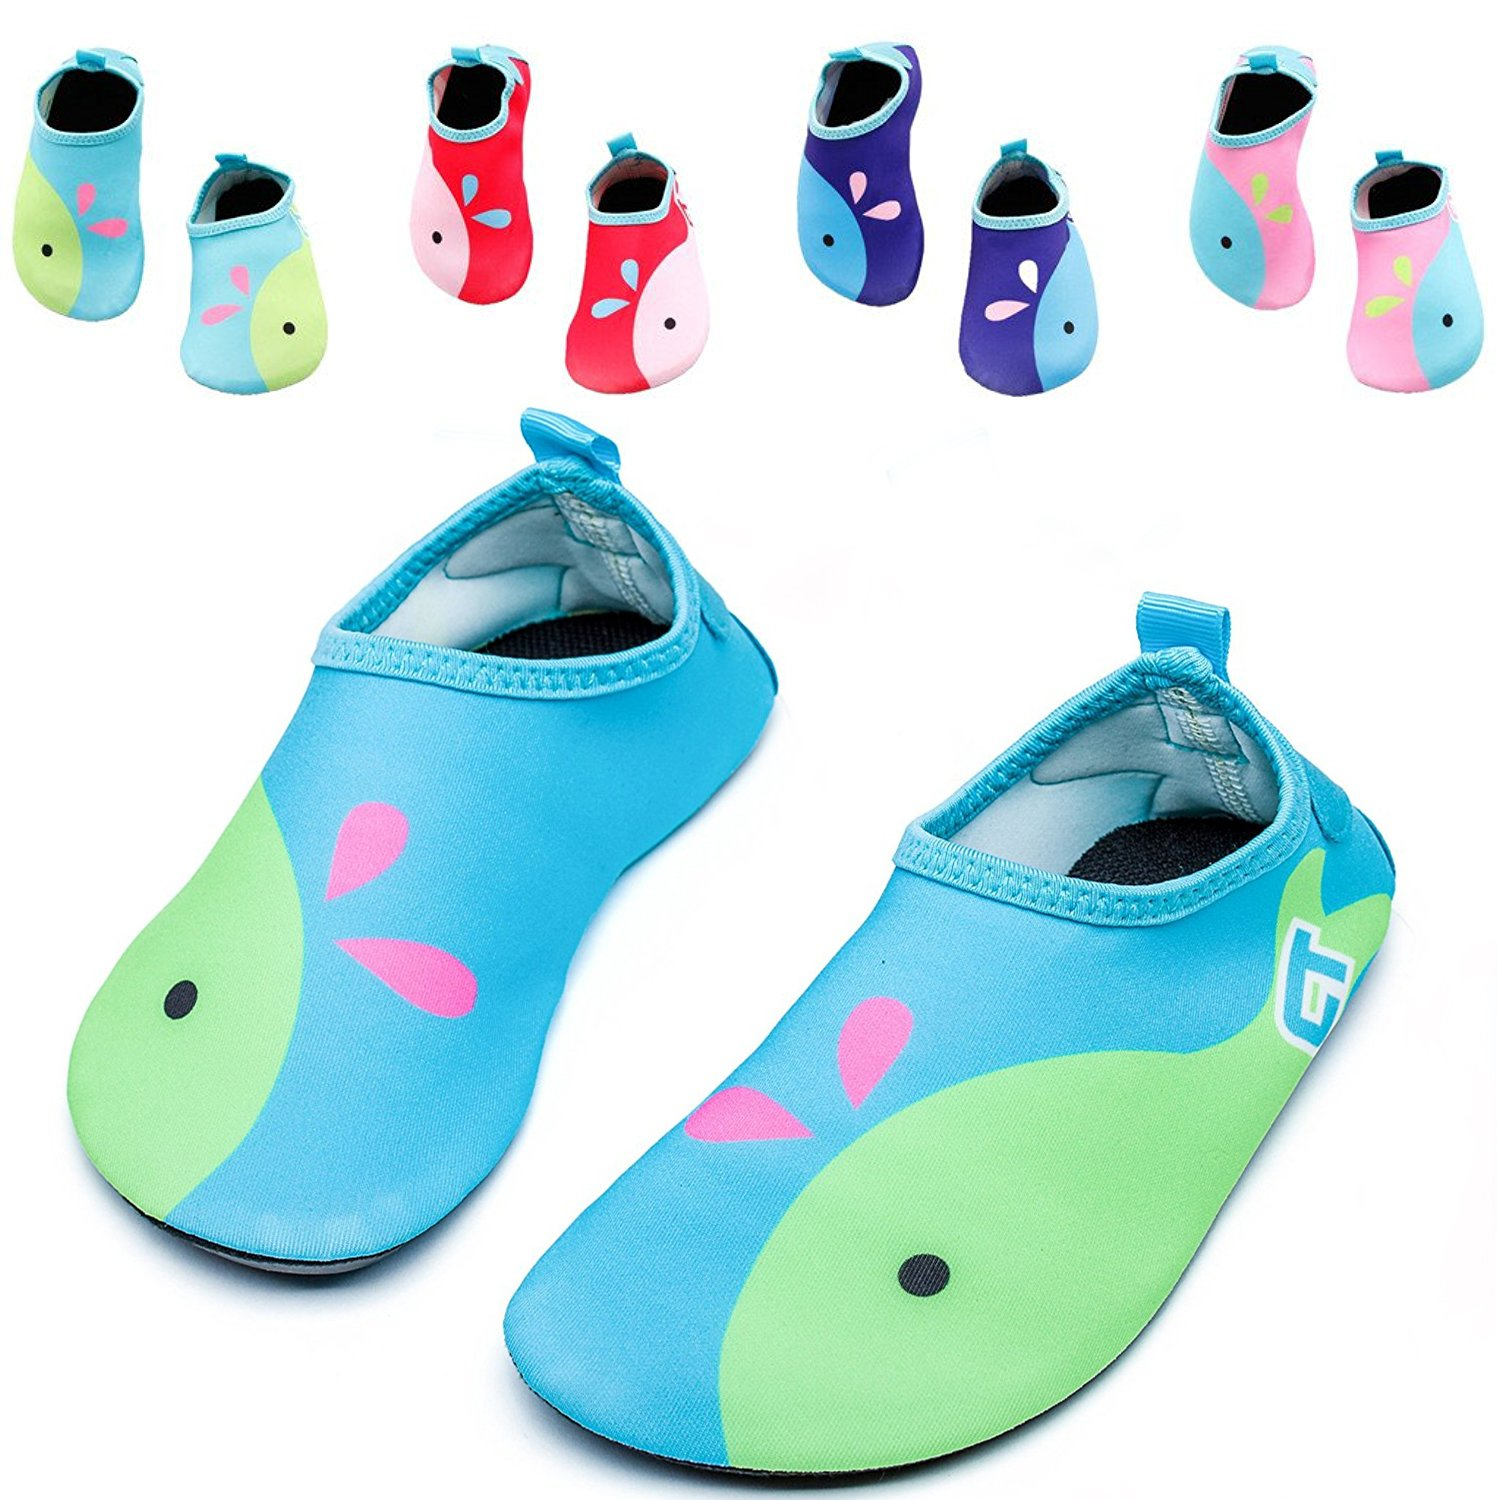 ef88c0a3613a Get Quotations · Vivay Toddler Kids Water Shoes Quick Drying Swim Beach  Shoes Aqua Socks for Boys   Girls